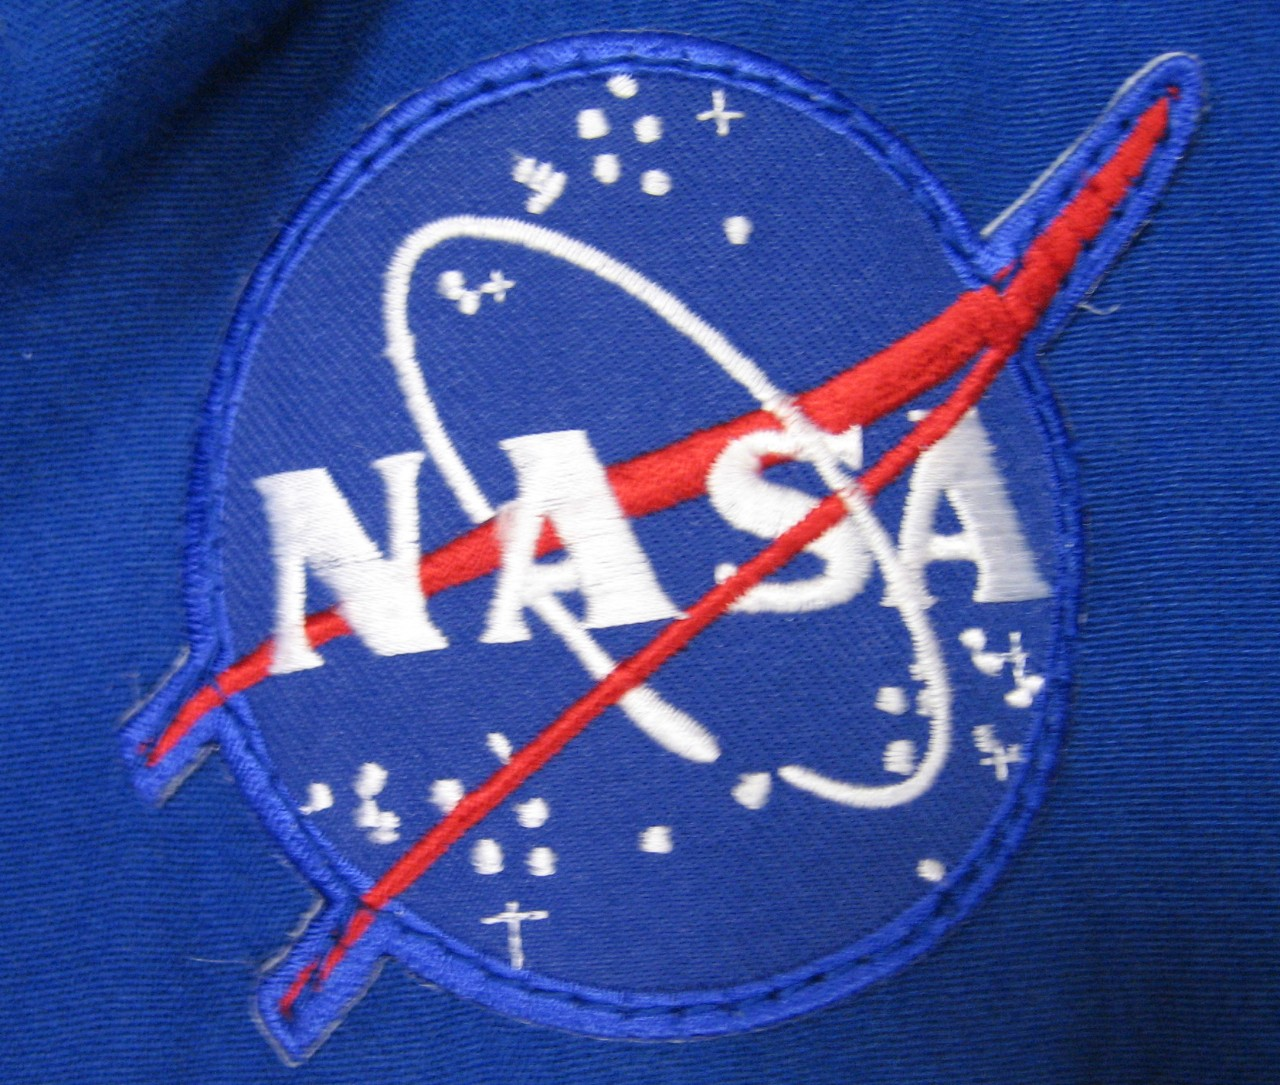 NASA patch on right chest of NASA coveralls.